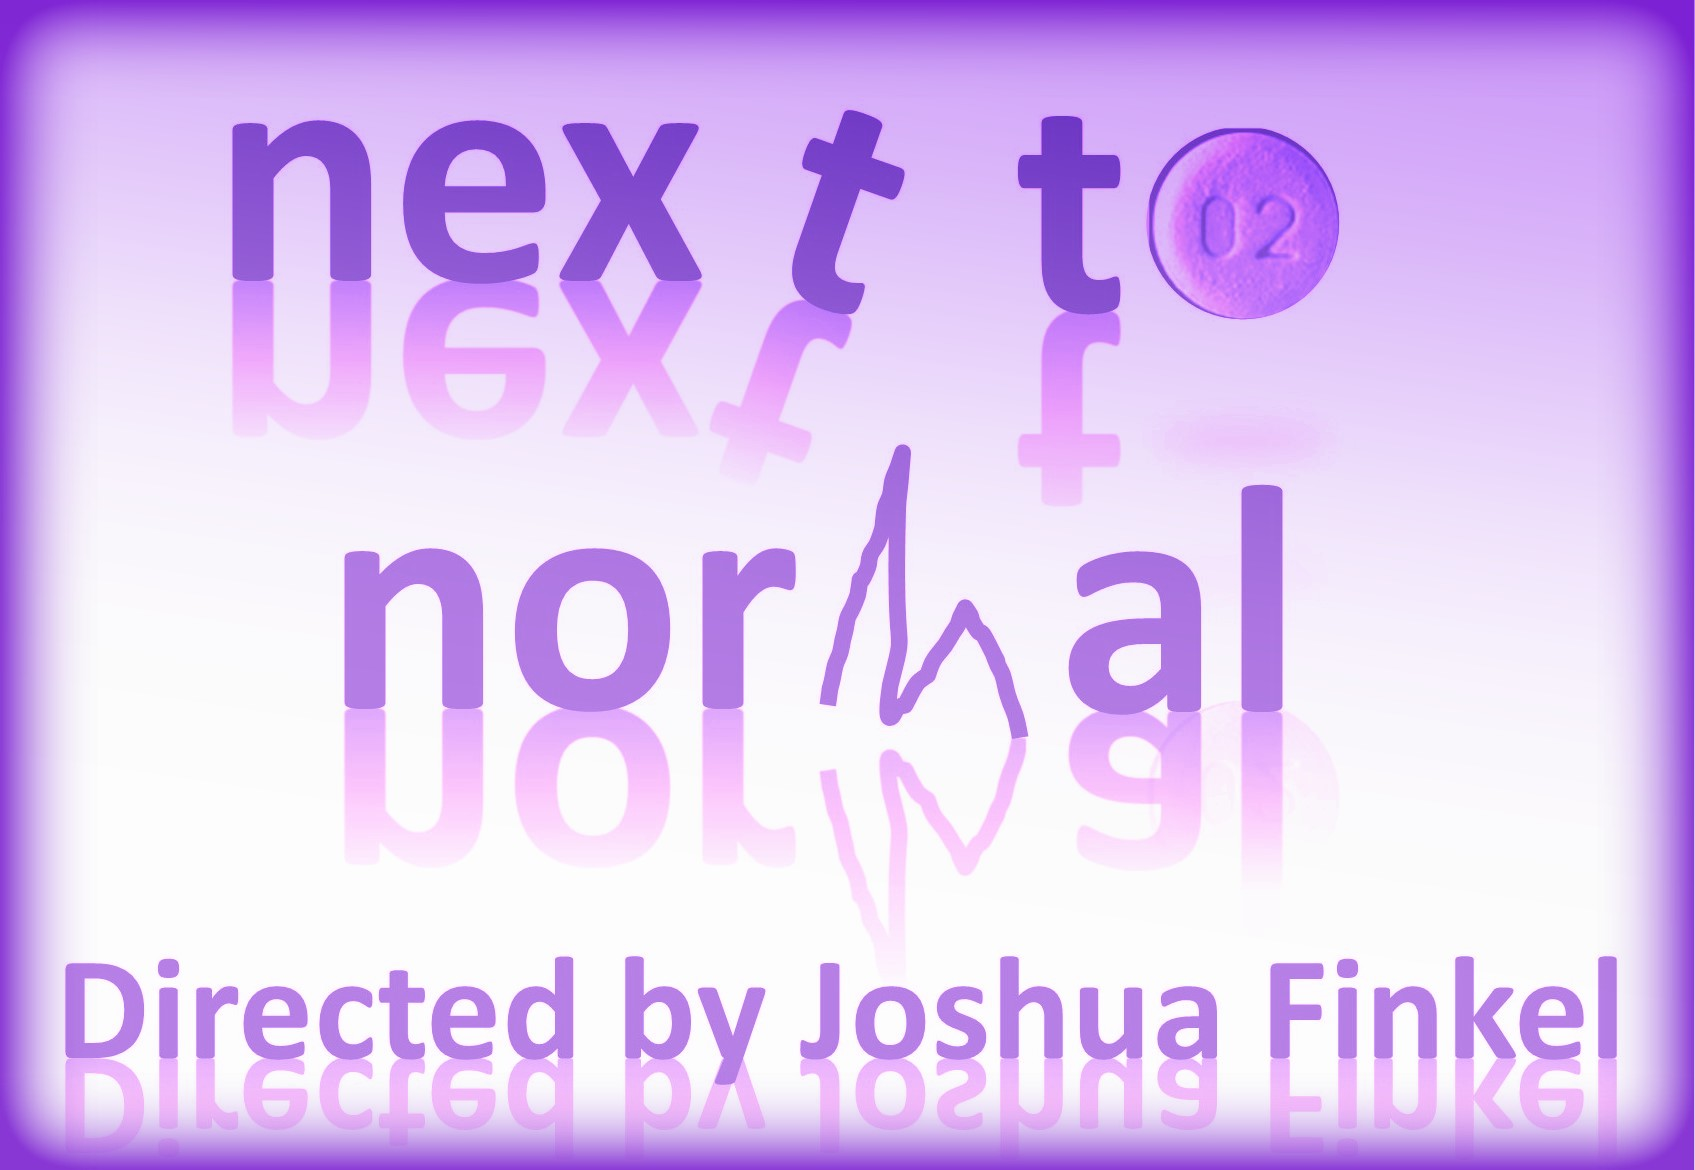 Next to Normal at P3 Theatre Company August 13-30, 2020